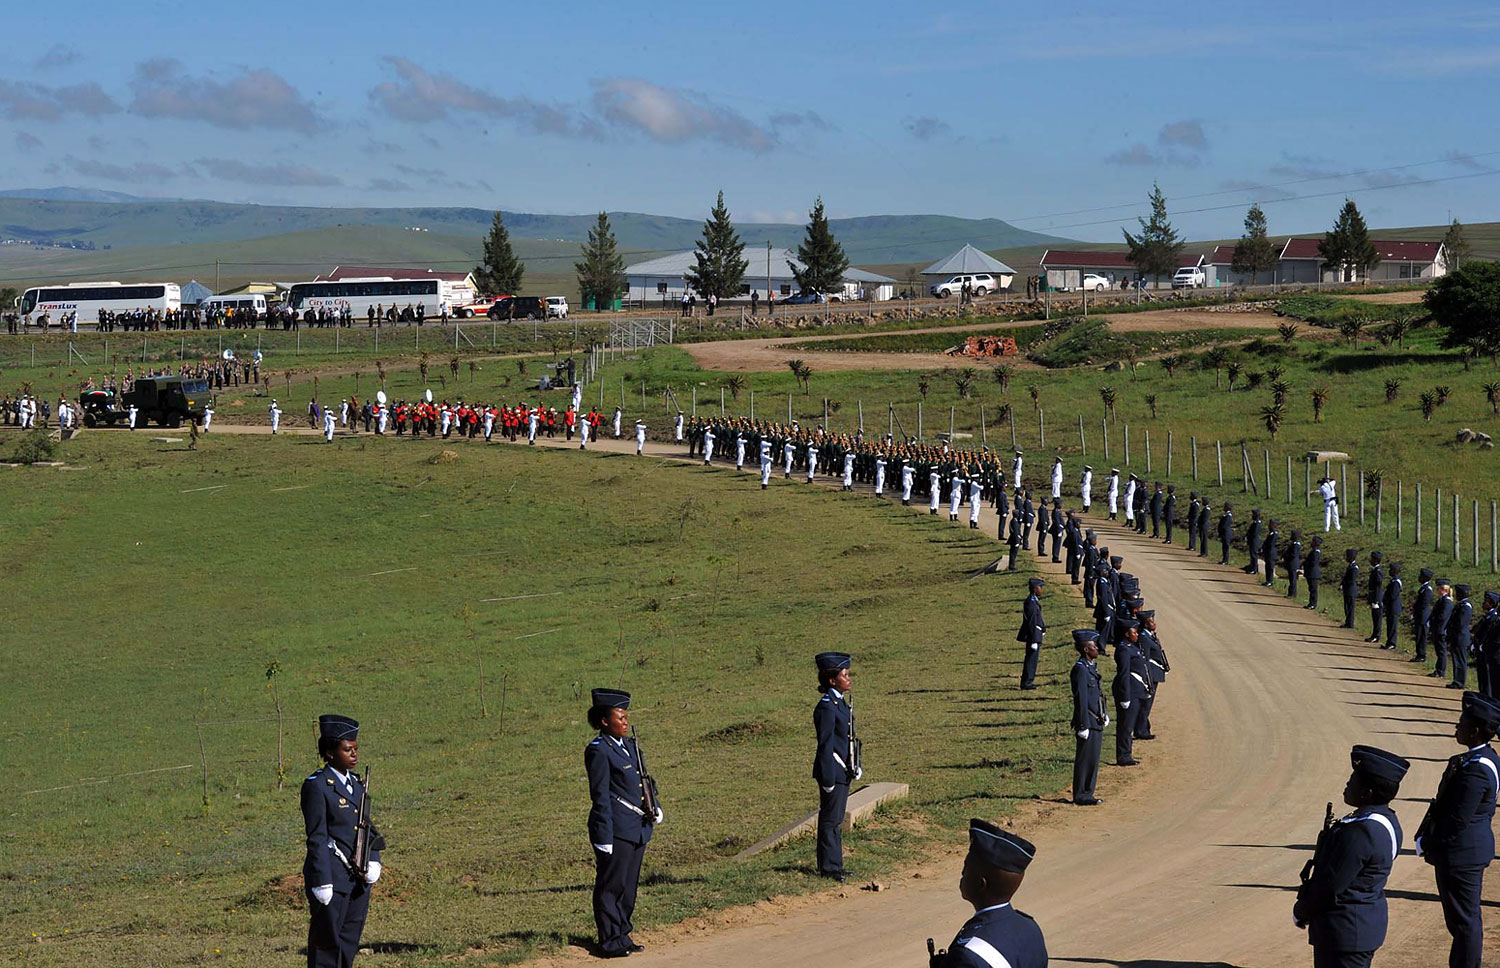 A military honor guard lines the route for former South African president Nelson Madela's funeral procession as it makes its way to his final resting place in his home village of Qunu on Dec. 15, 2013.